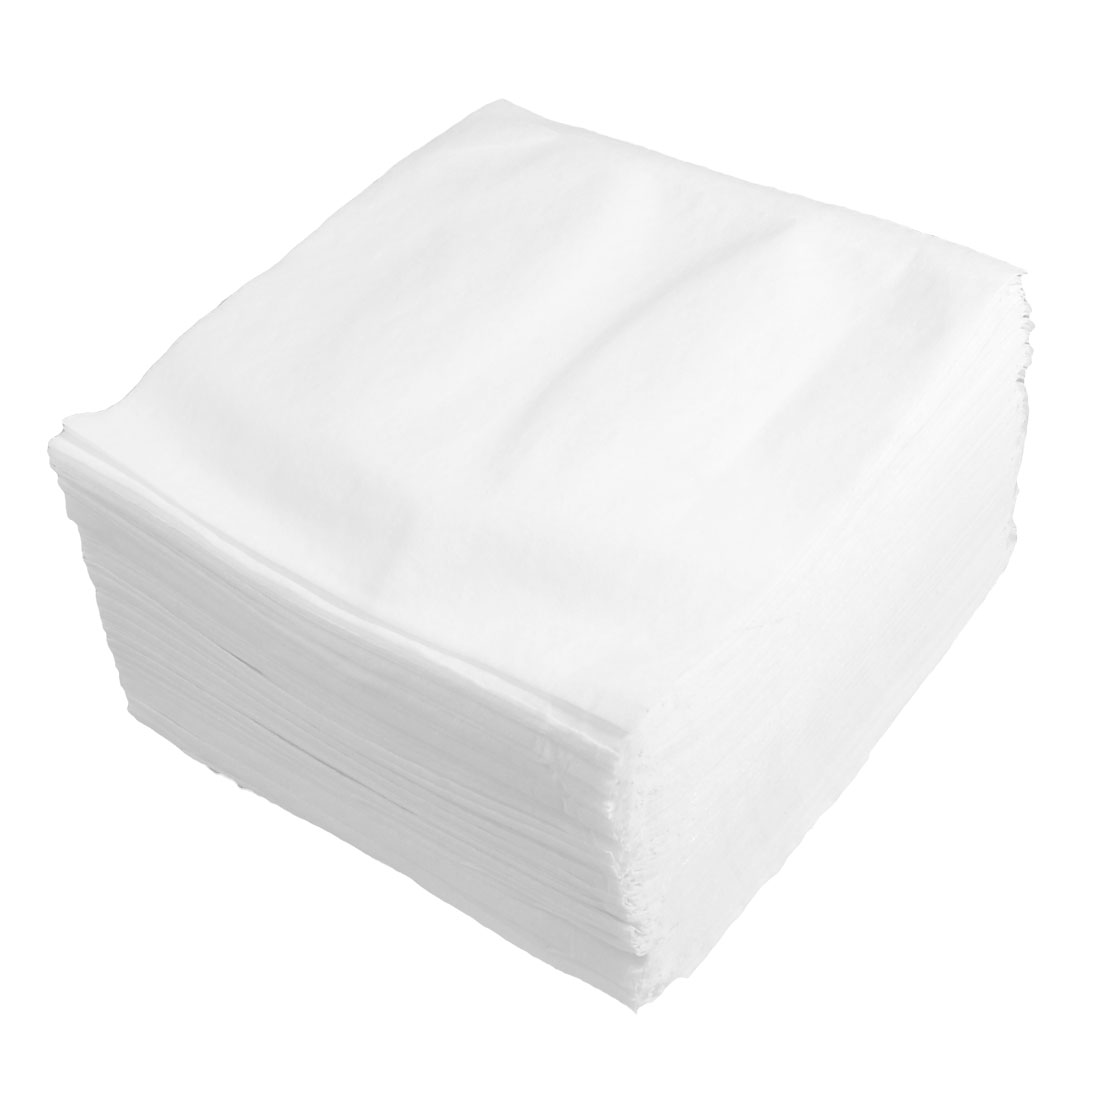 "280 Pcs Antistatic White Non-woven Clean Cleanroom Wipers 4"" x 8"""